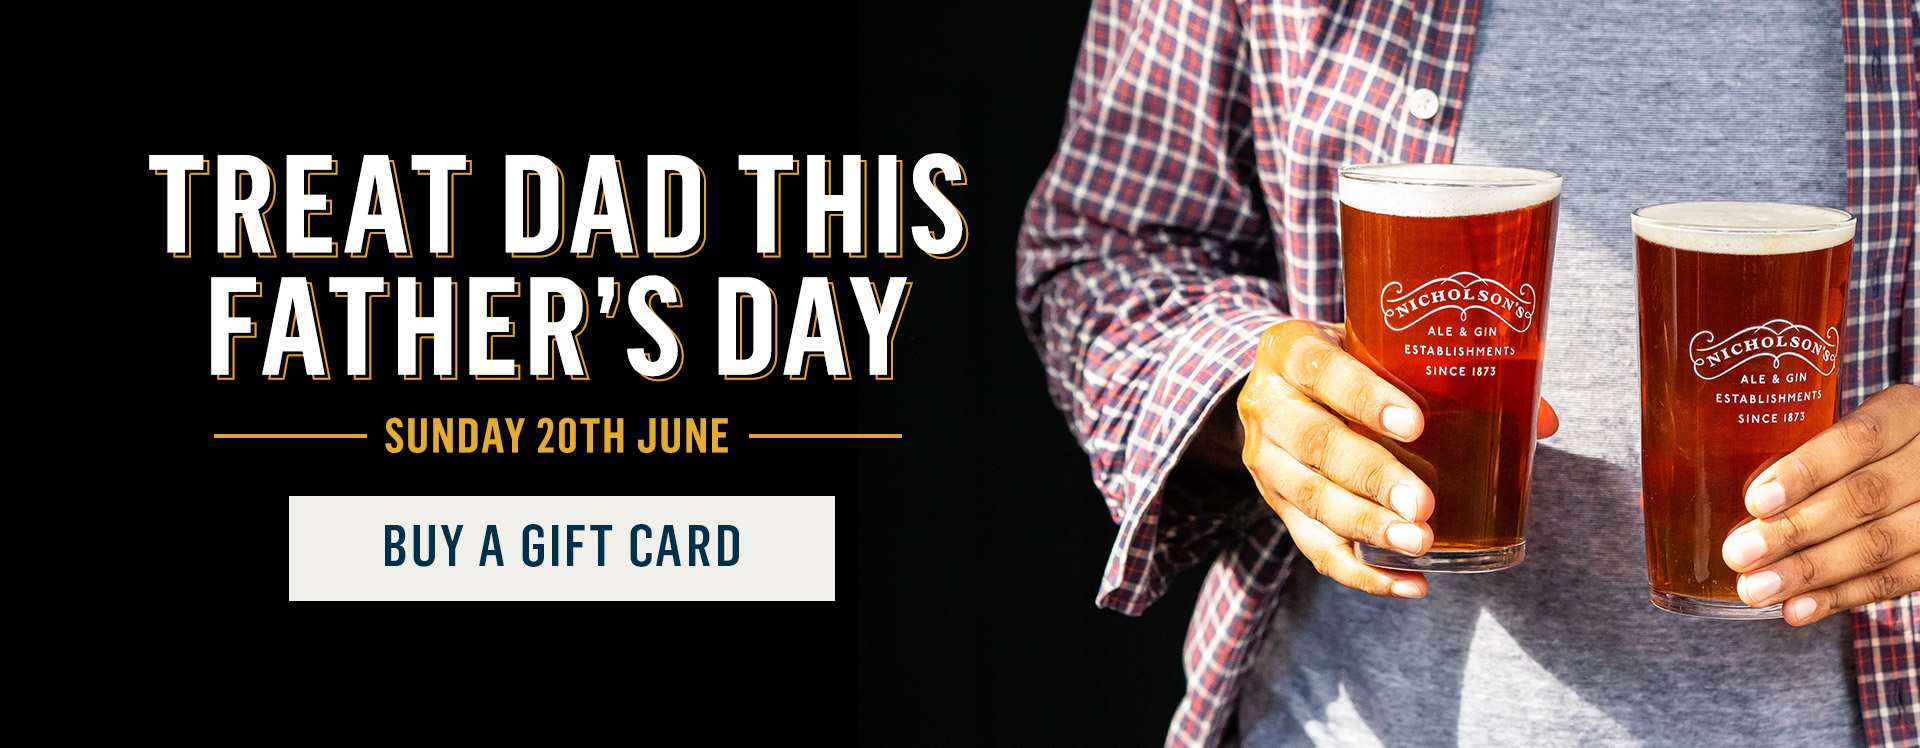 fathersday-gifting-banner.jpg